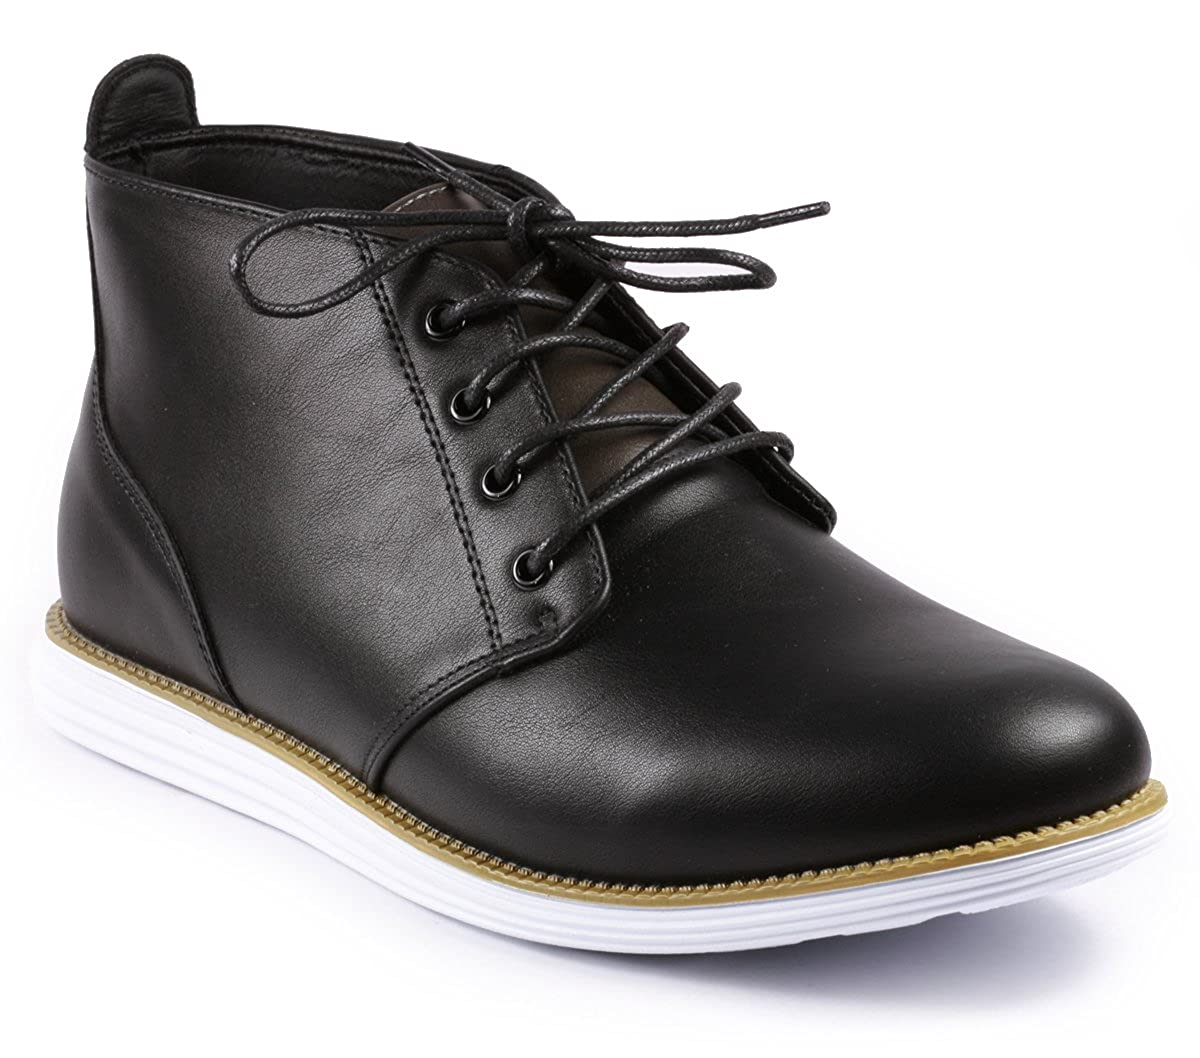 Amazon.com | Metrocharm BM2025 Mens Casual Chukka Mid-Top Sneaker Boots |  Chukka